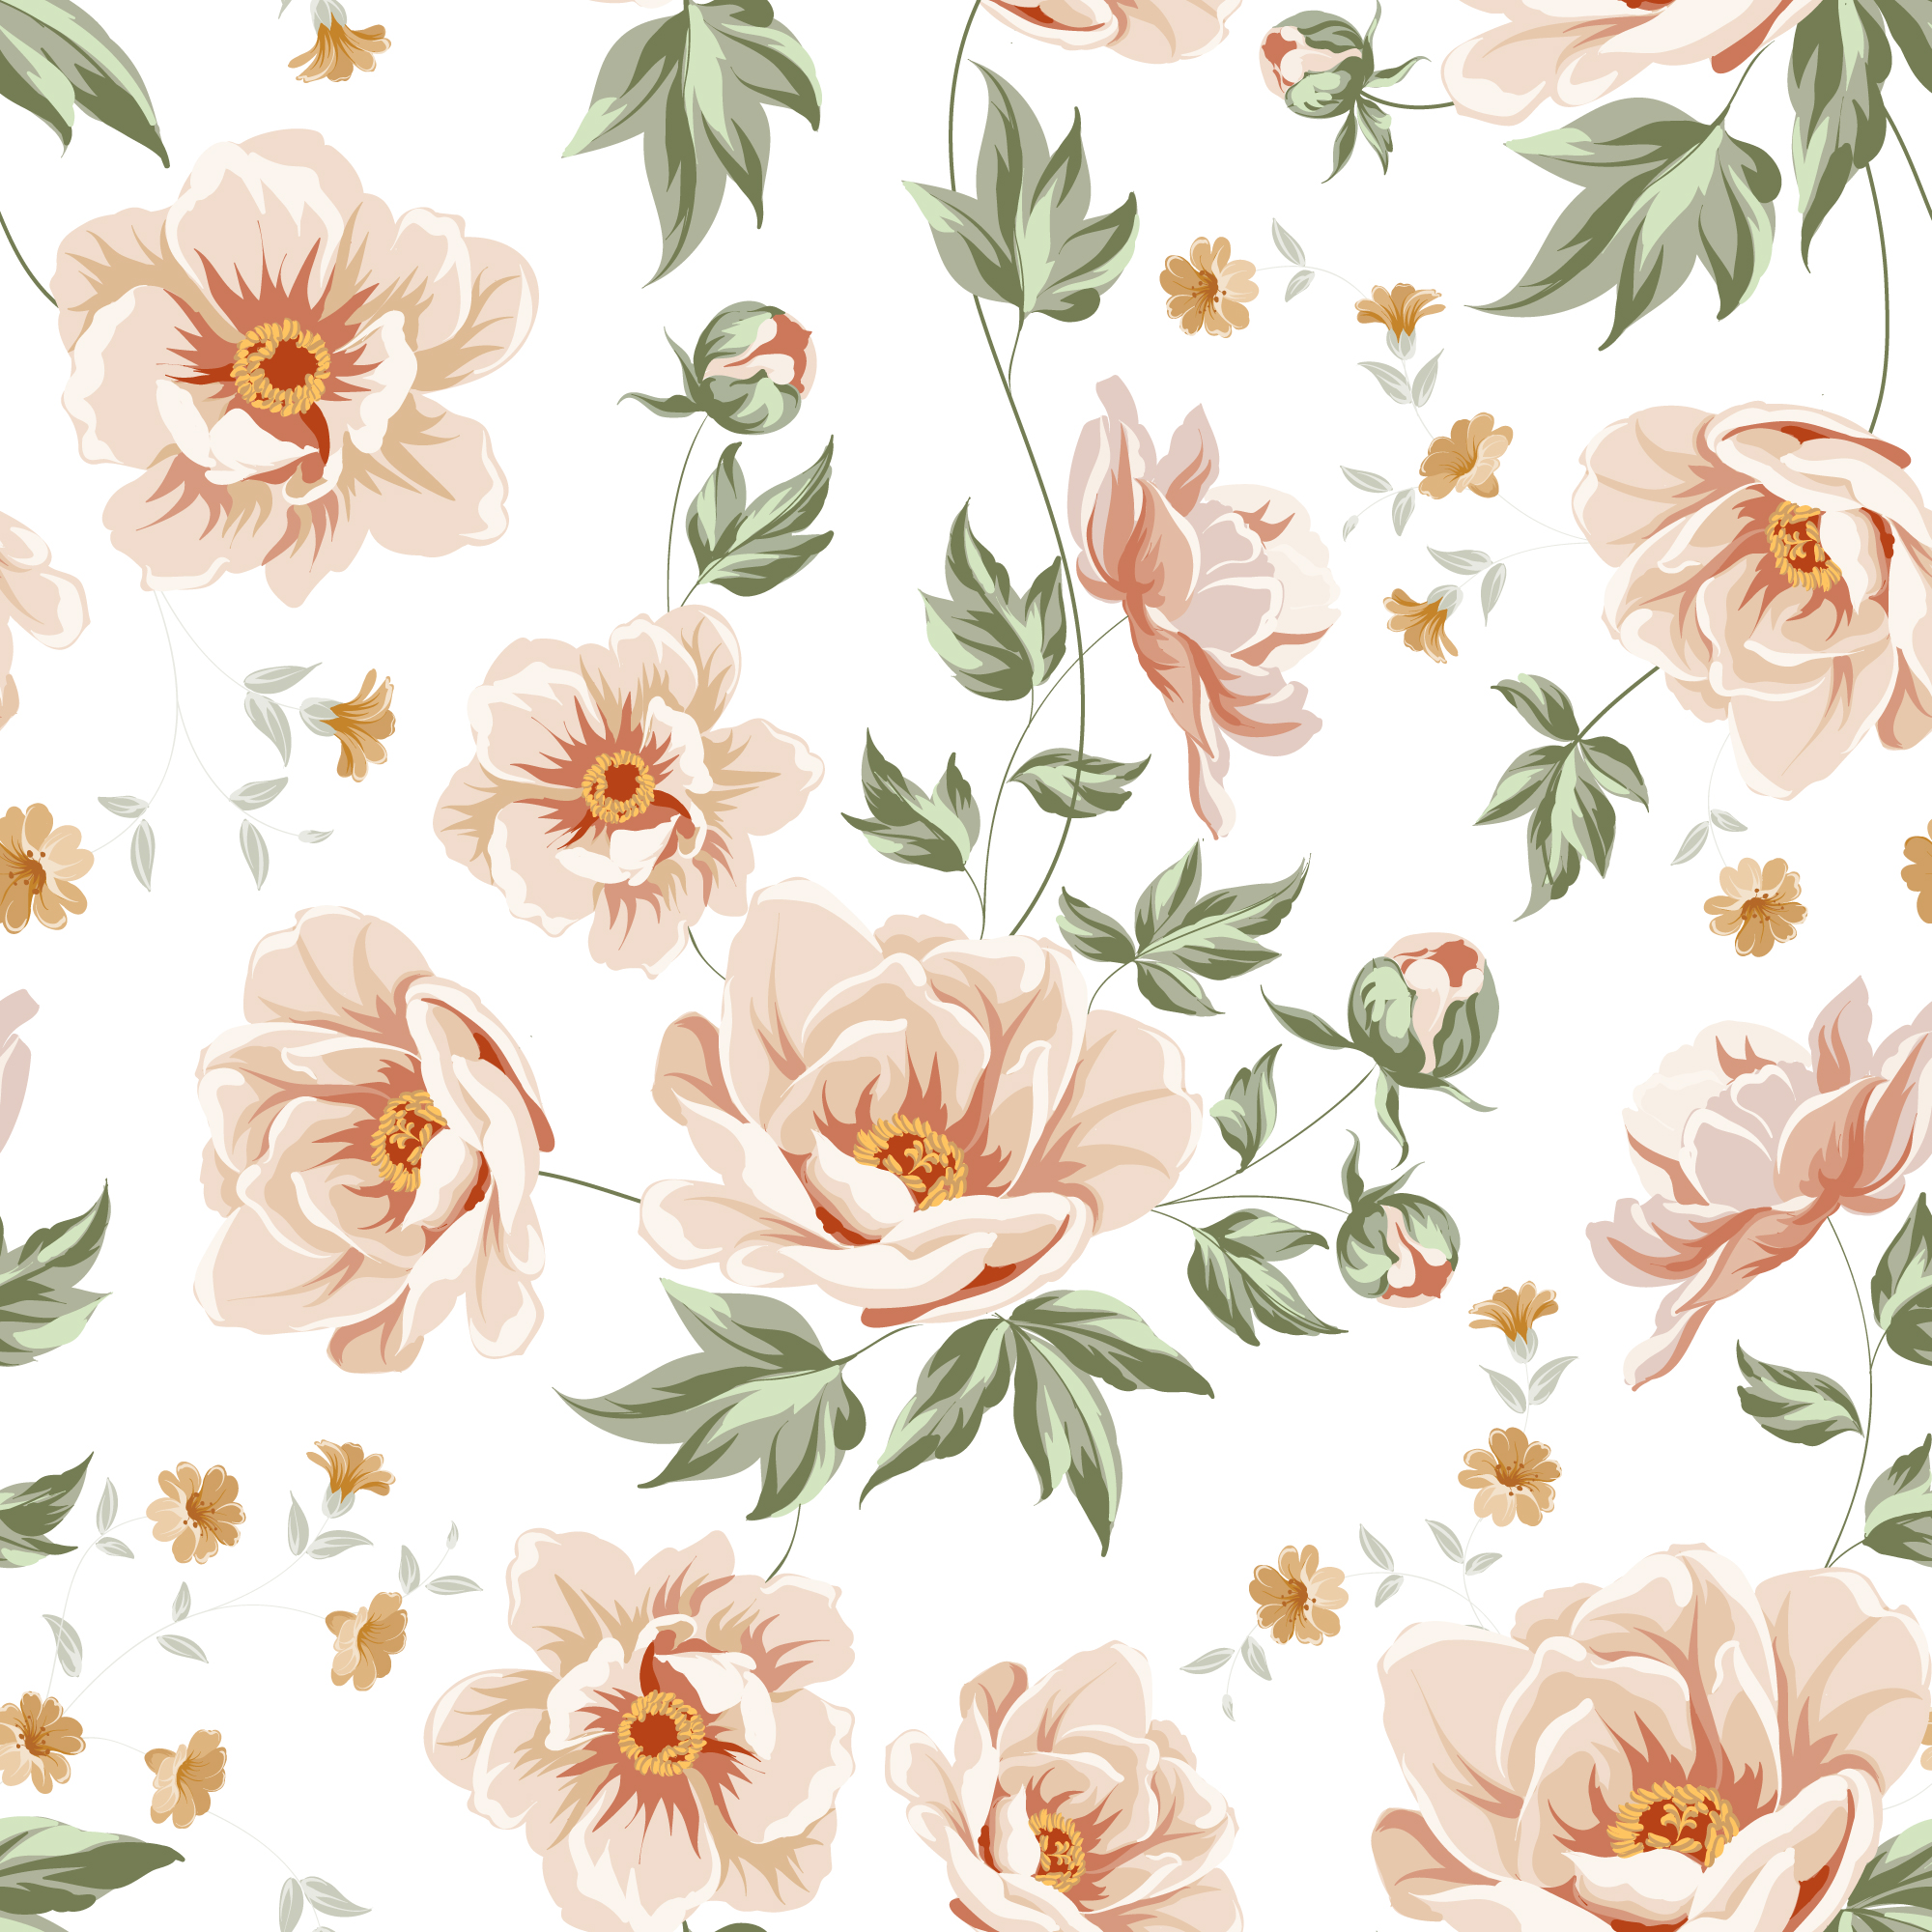 Background with a stylish floral pattern